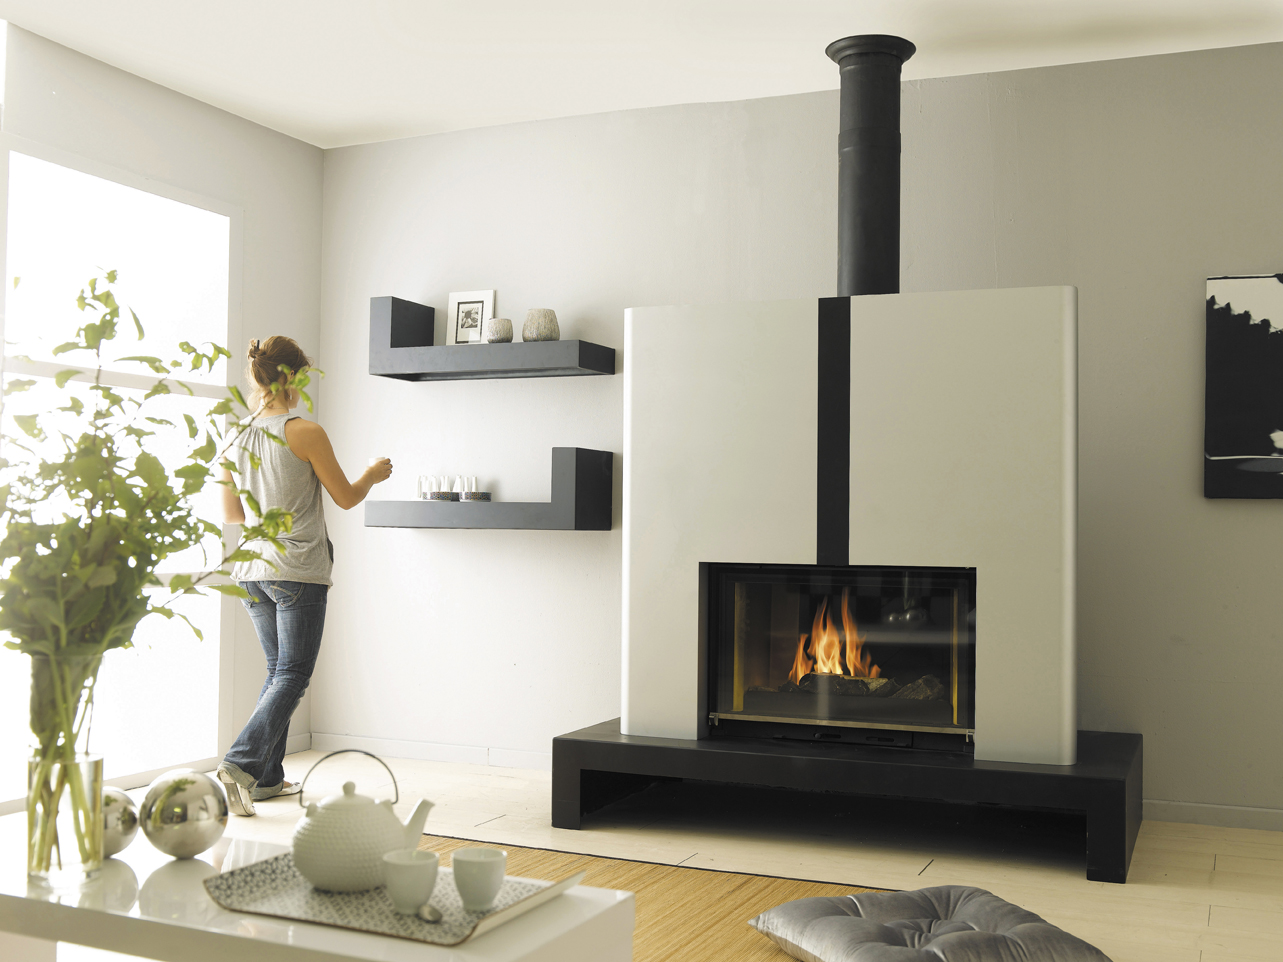 Cheminees Philippe: the best of both heating worlds - double sided fireplaces